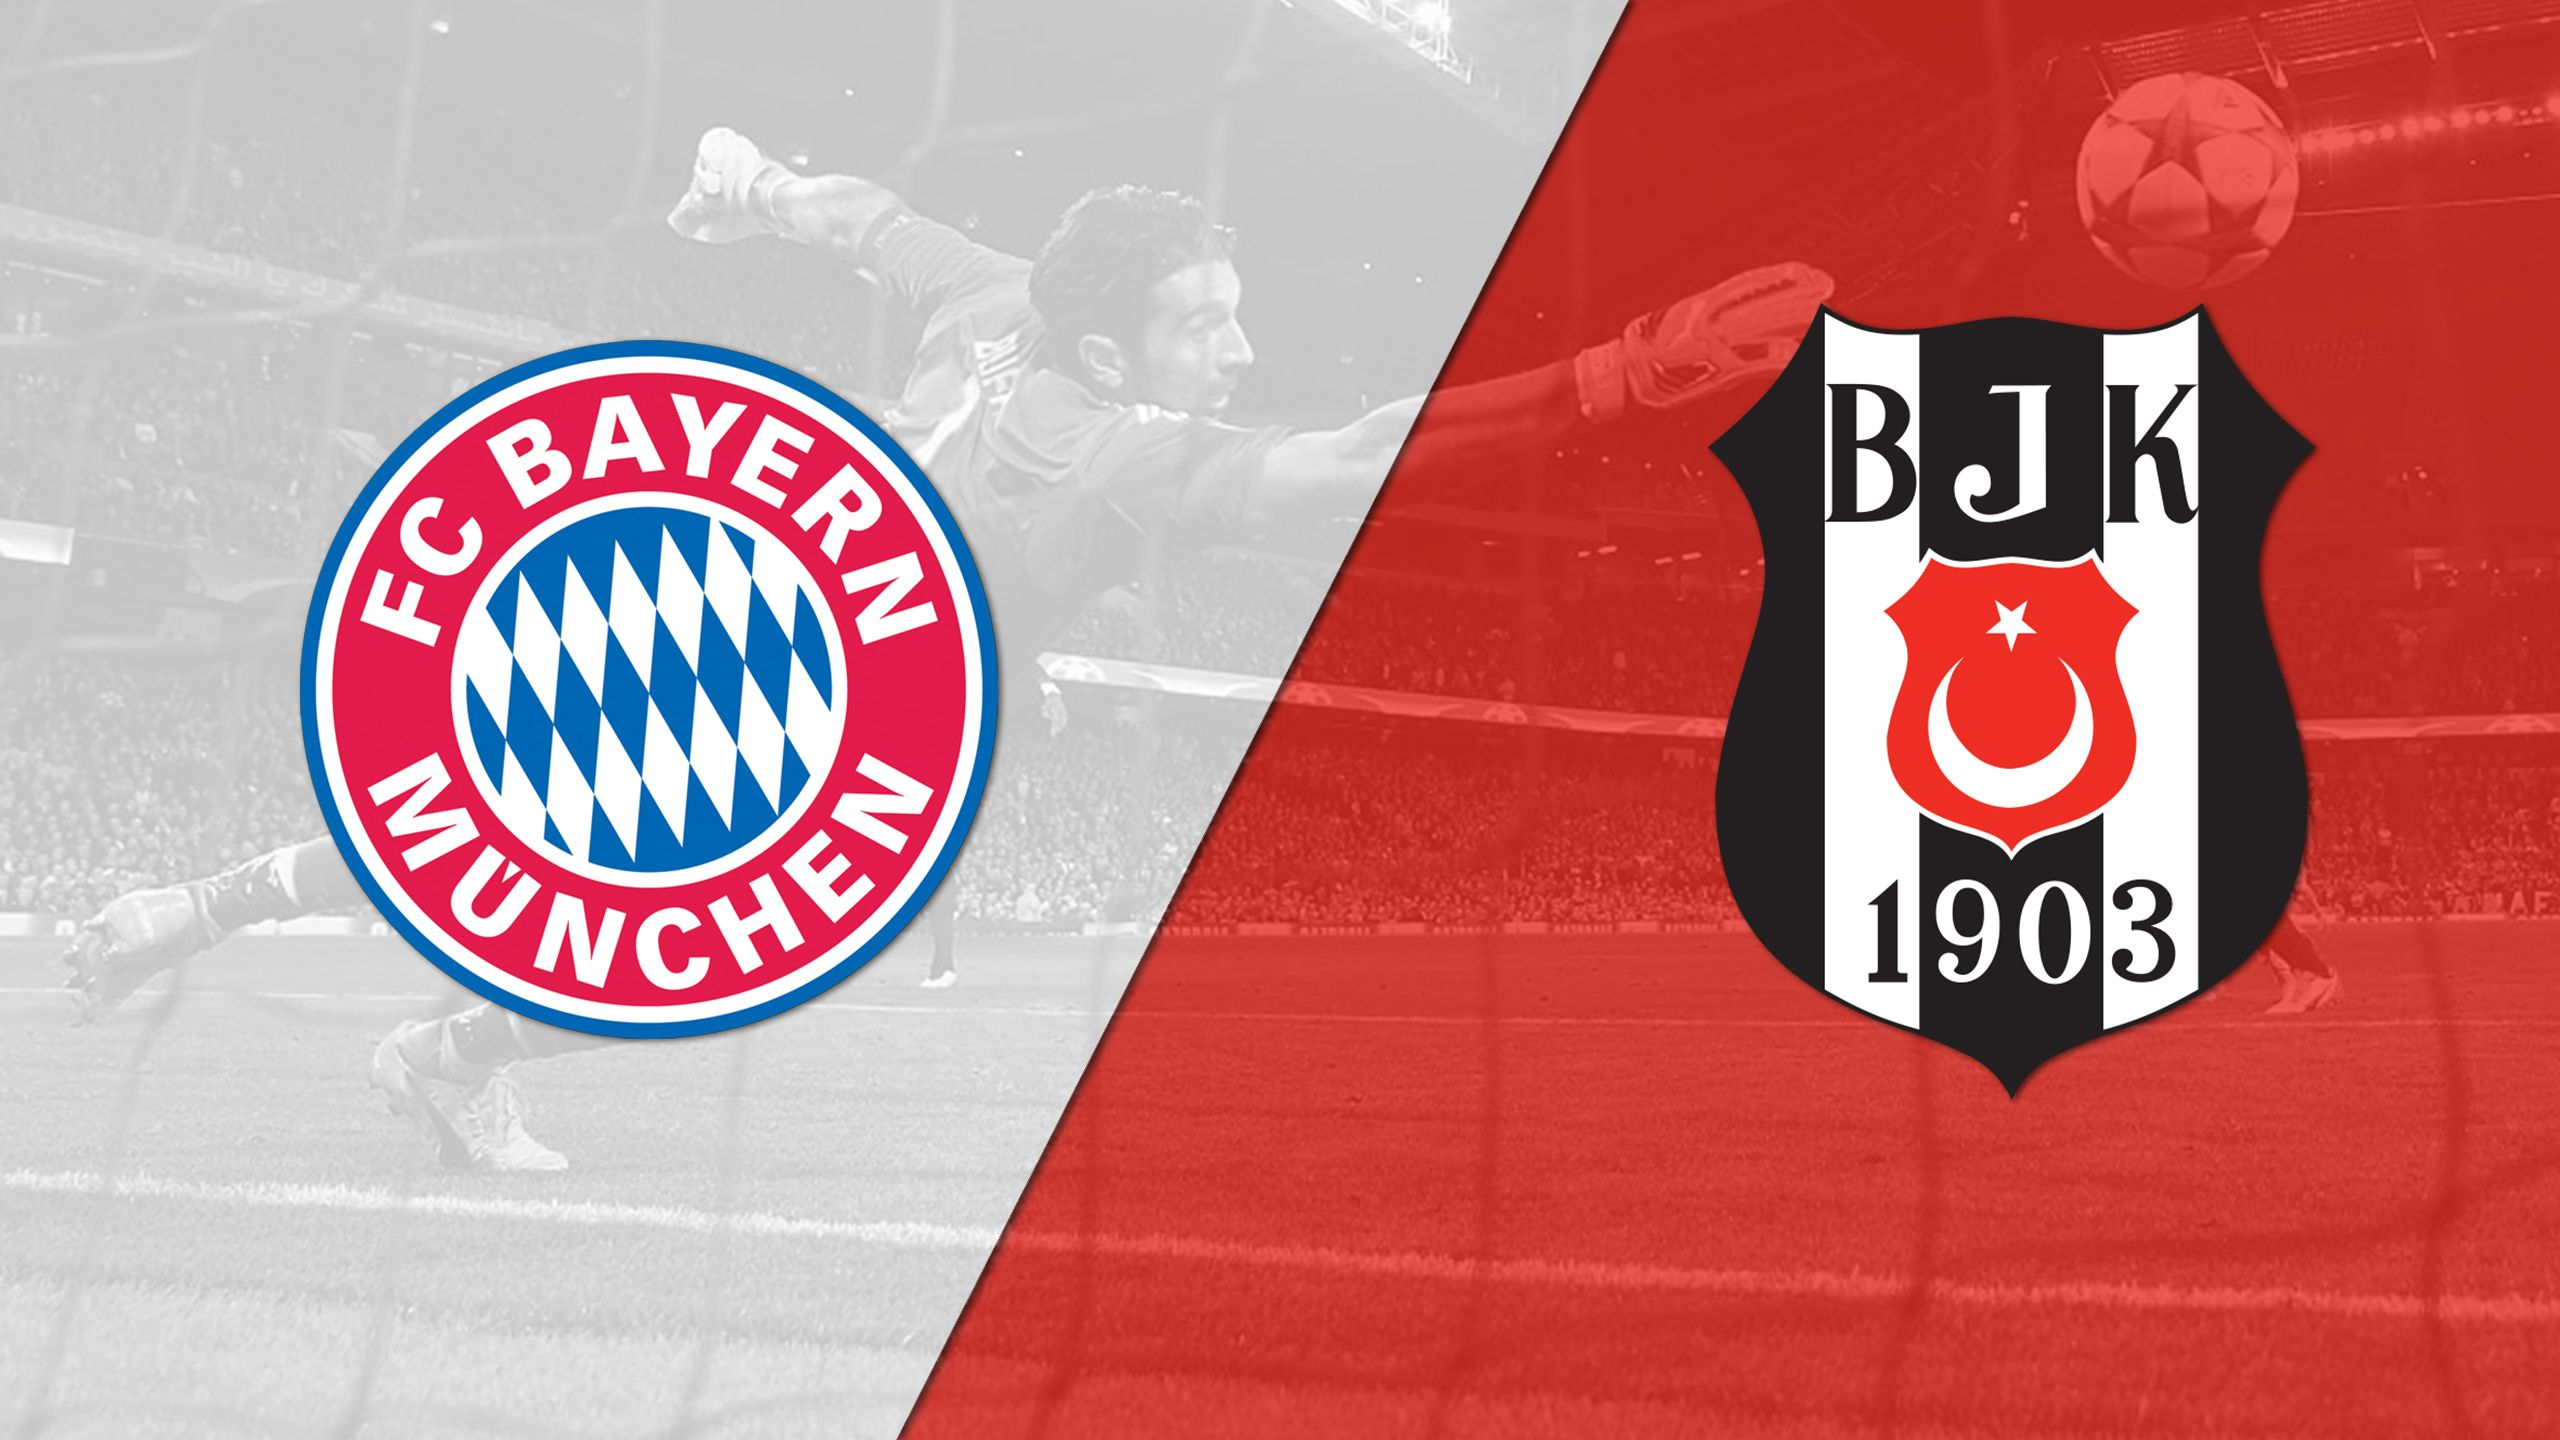 In Spanish - Bayern Munich vs. Besiktas (UEFA Champions League)